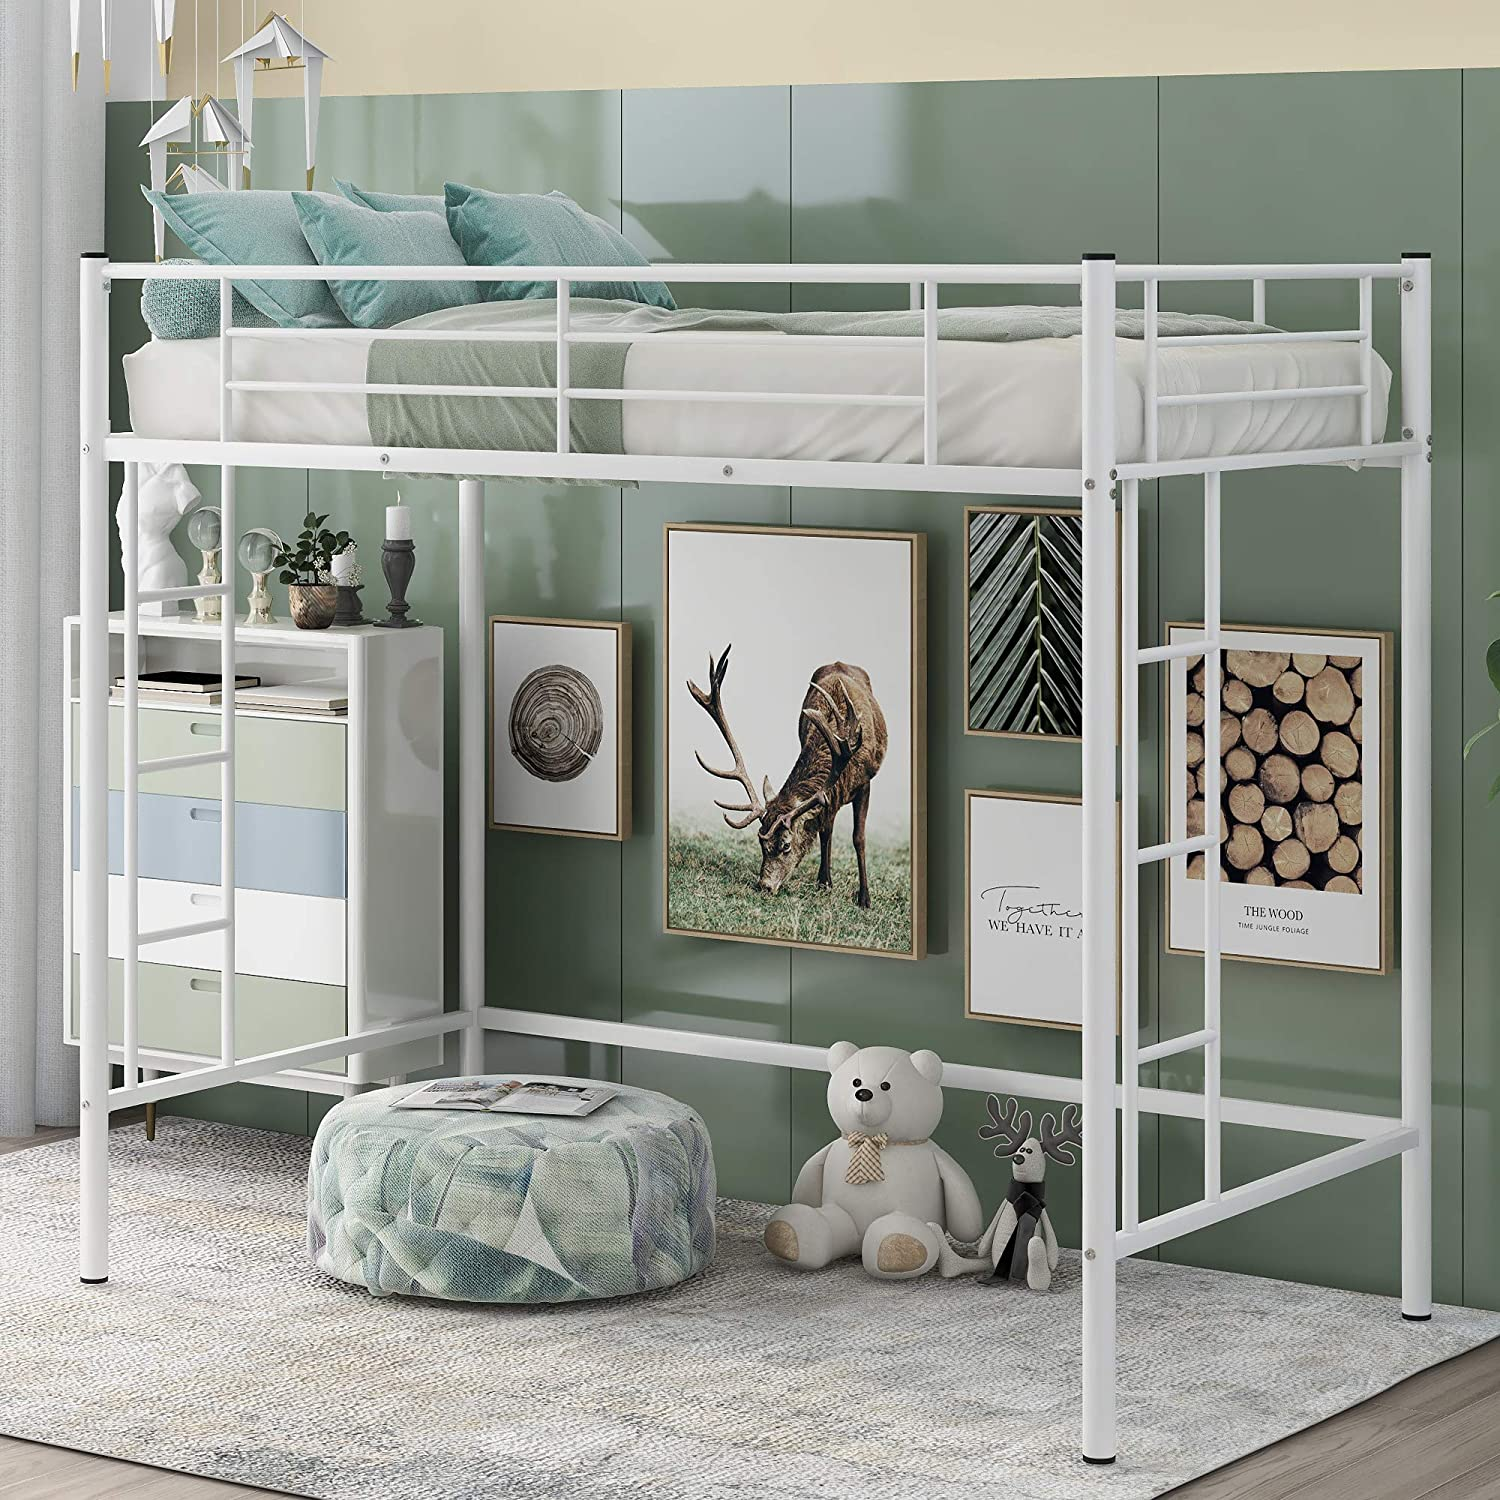 Max 65% OFF Merax Metal Bed Twin Loft Frame w Sturdy with Steel New products, world's highest quality popular!